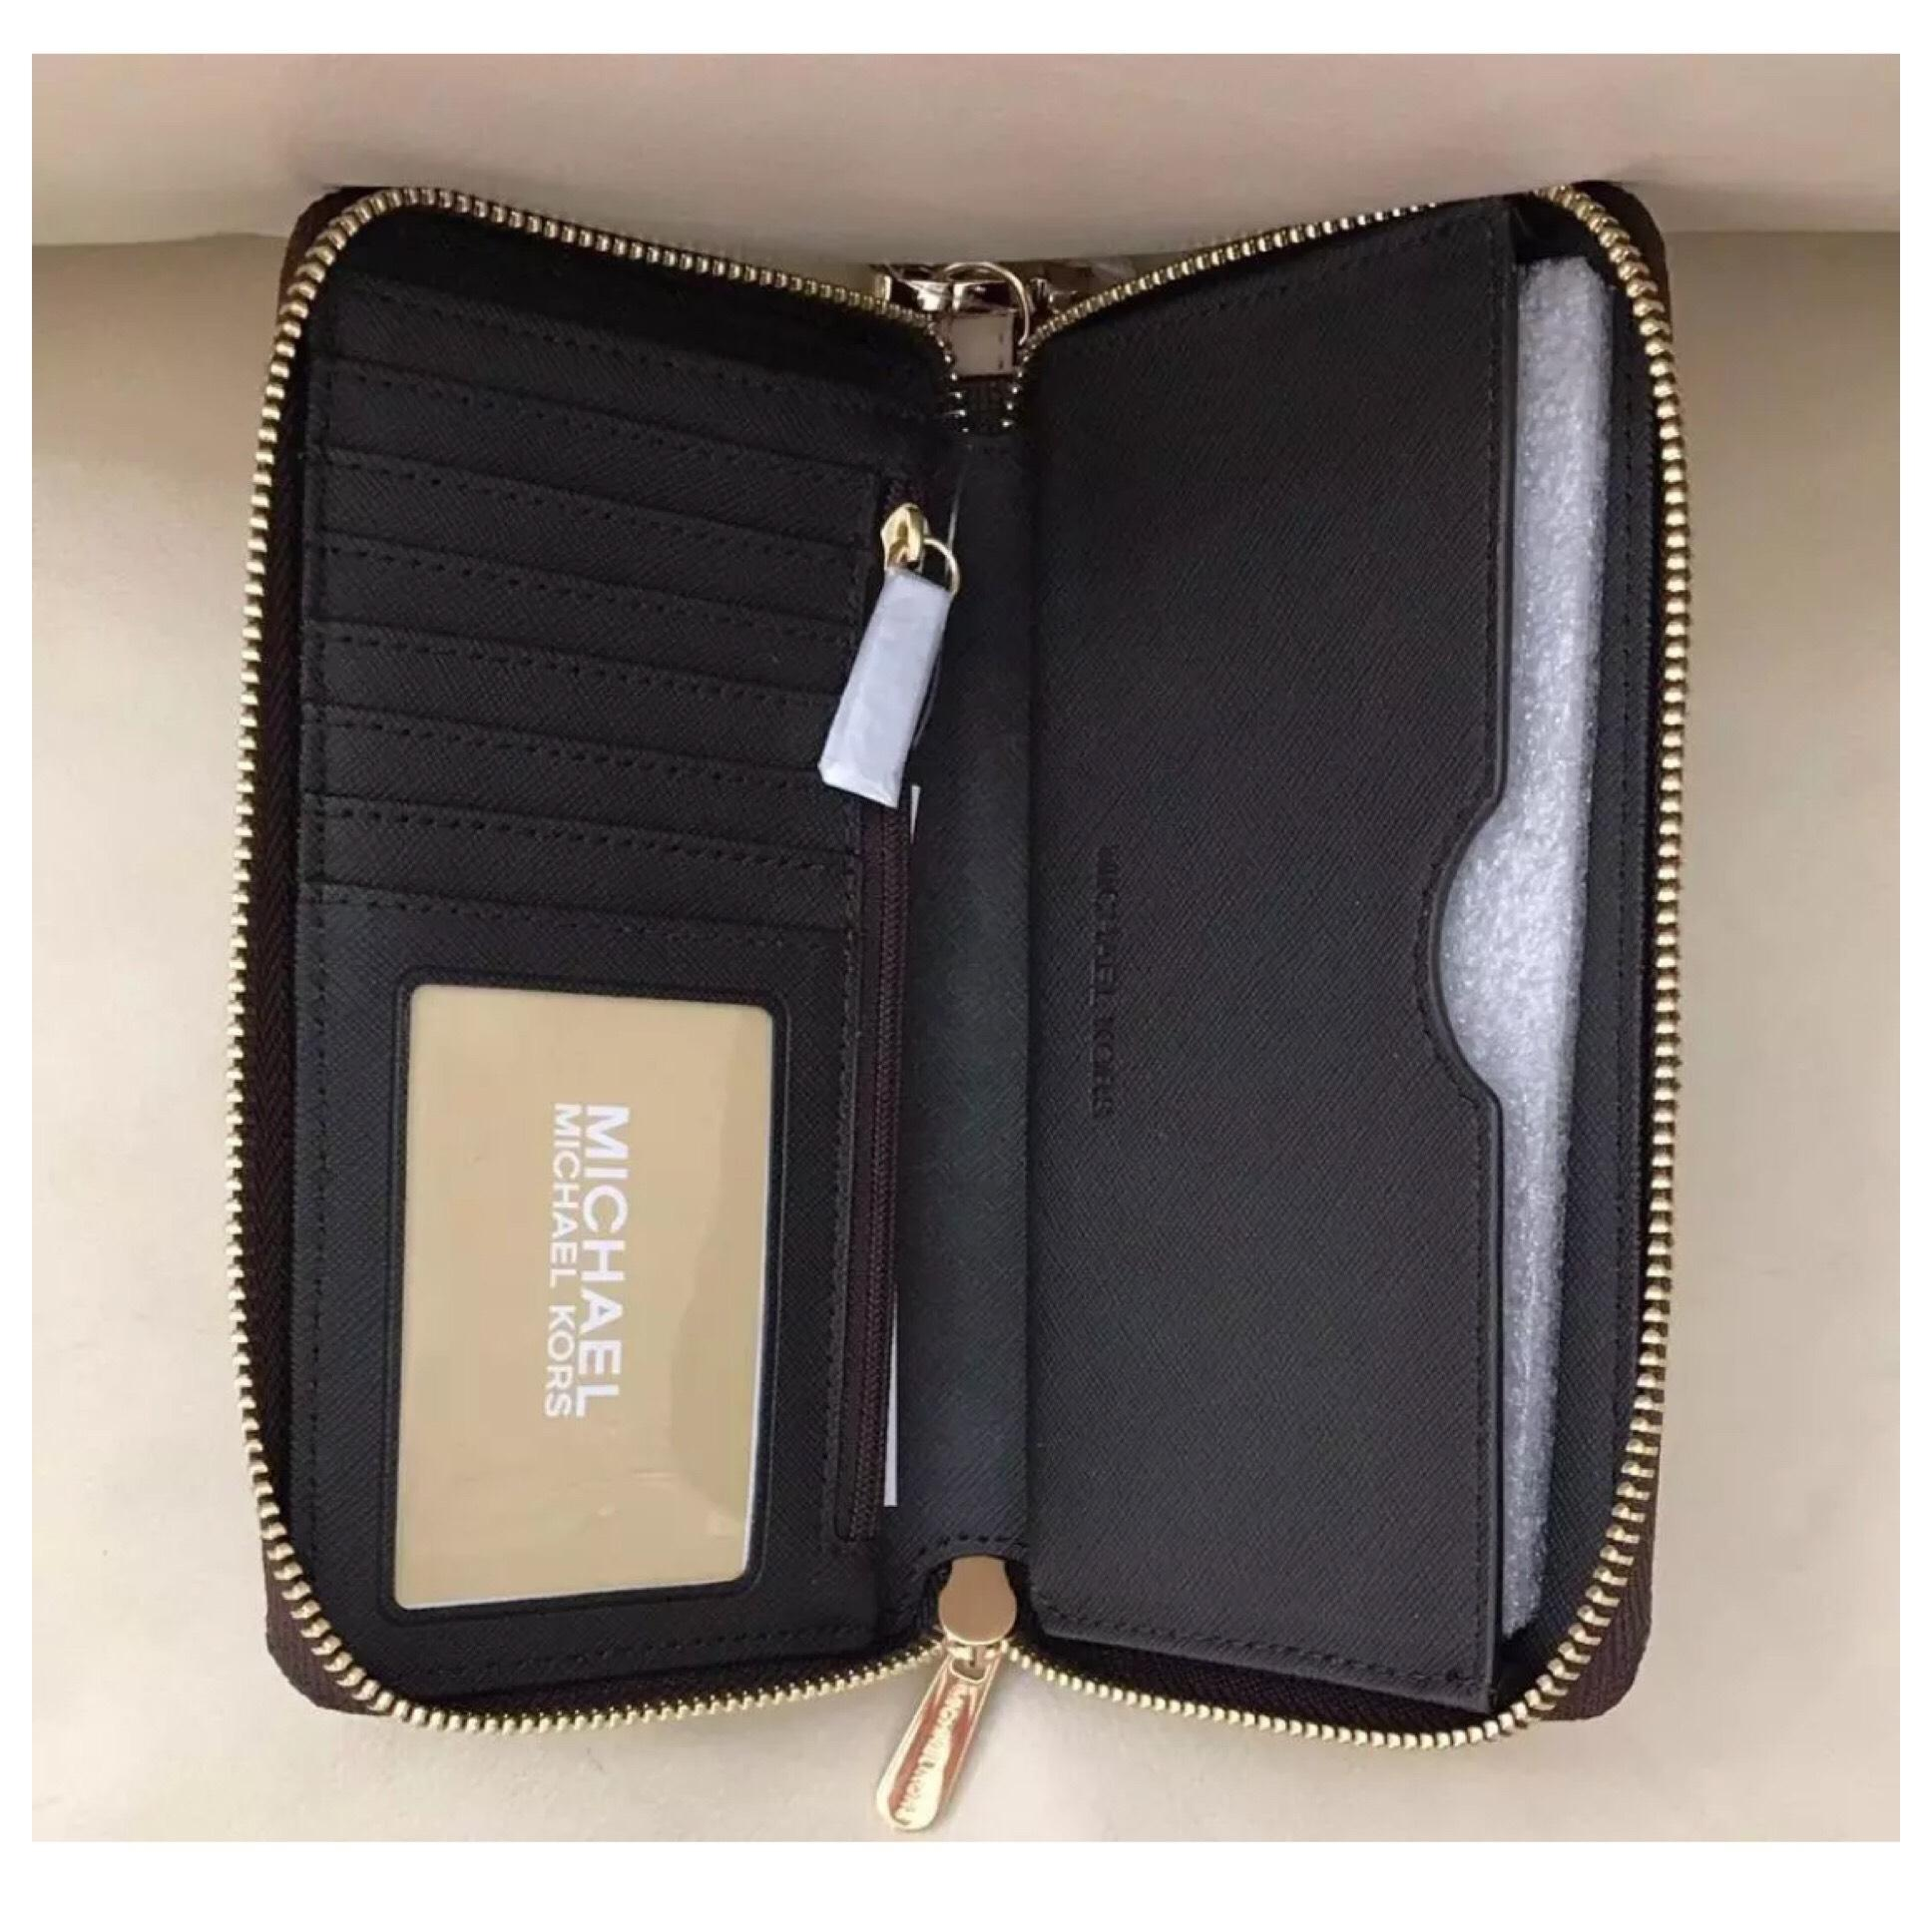 affde944a9c92c ... discount code for michael kors mk grayson medium chain multifunction  wallet brown f02f1 7d833